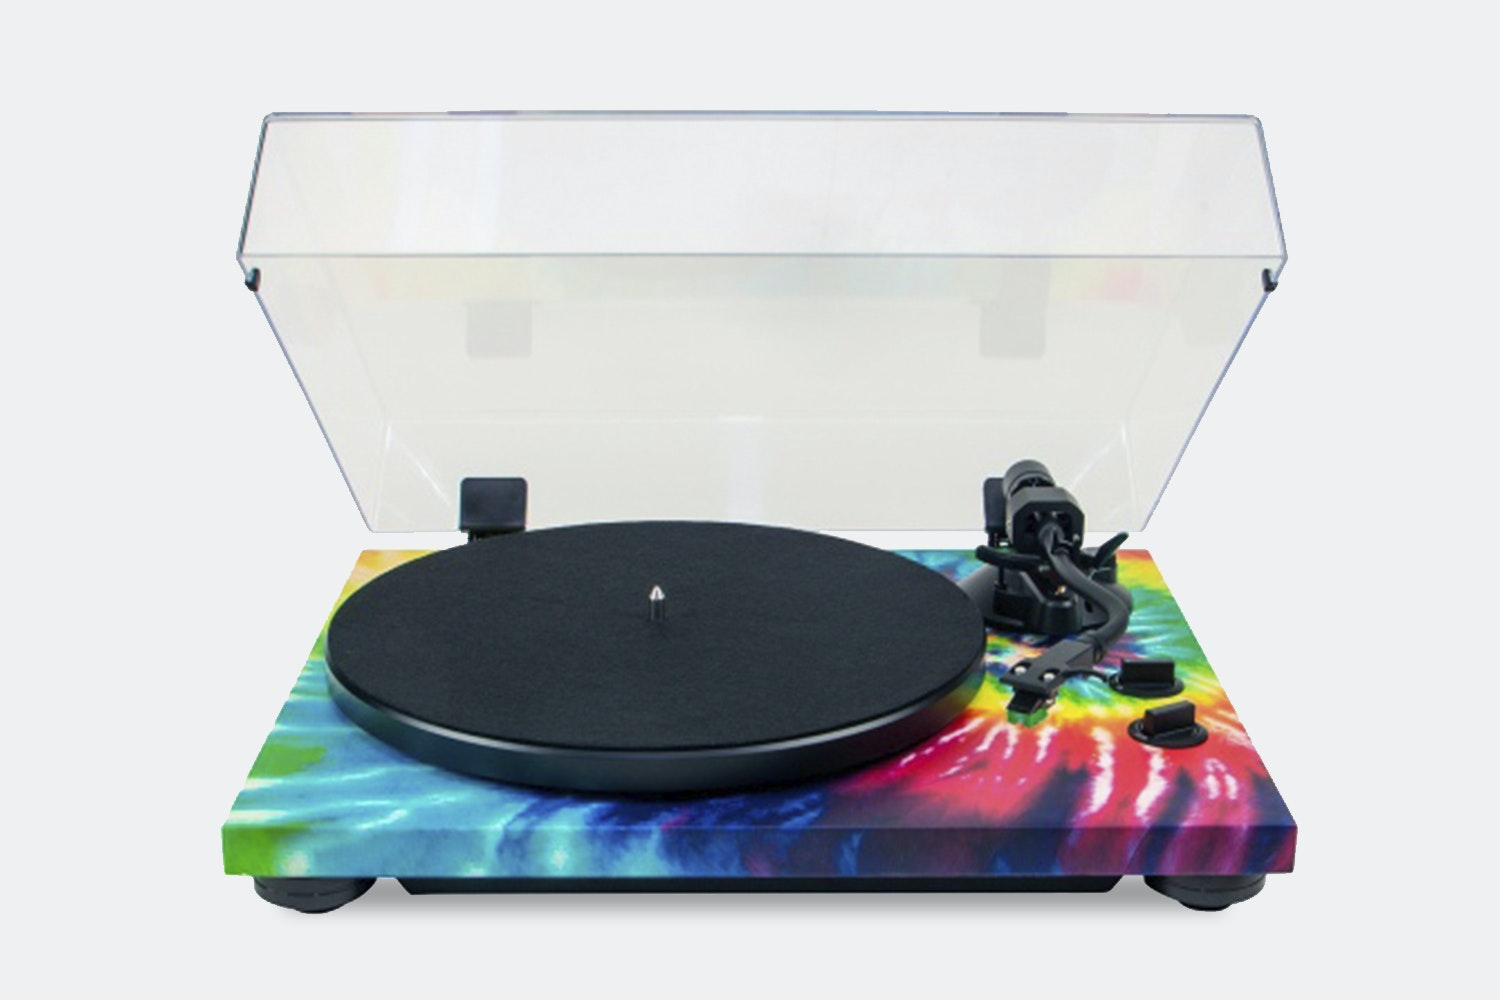 TEAC TN-420 Tie-Dye Turntable